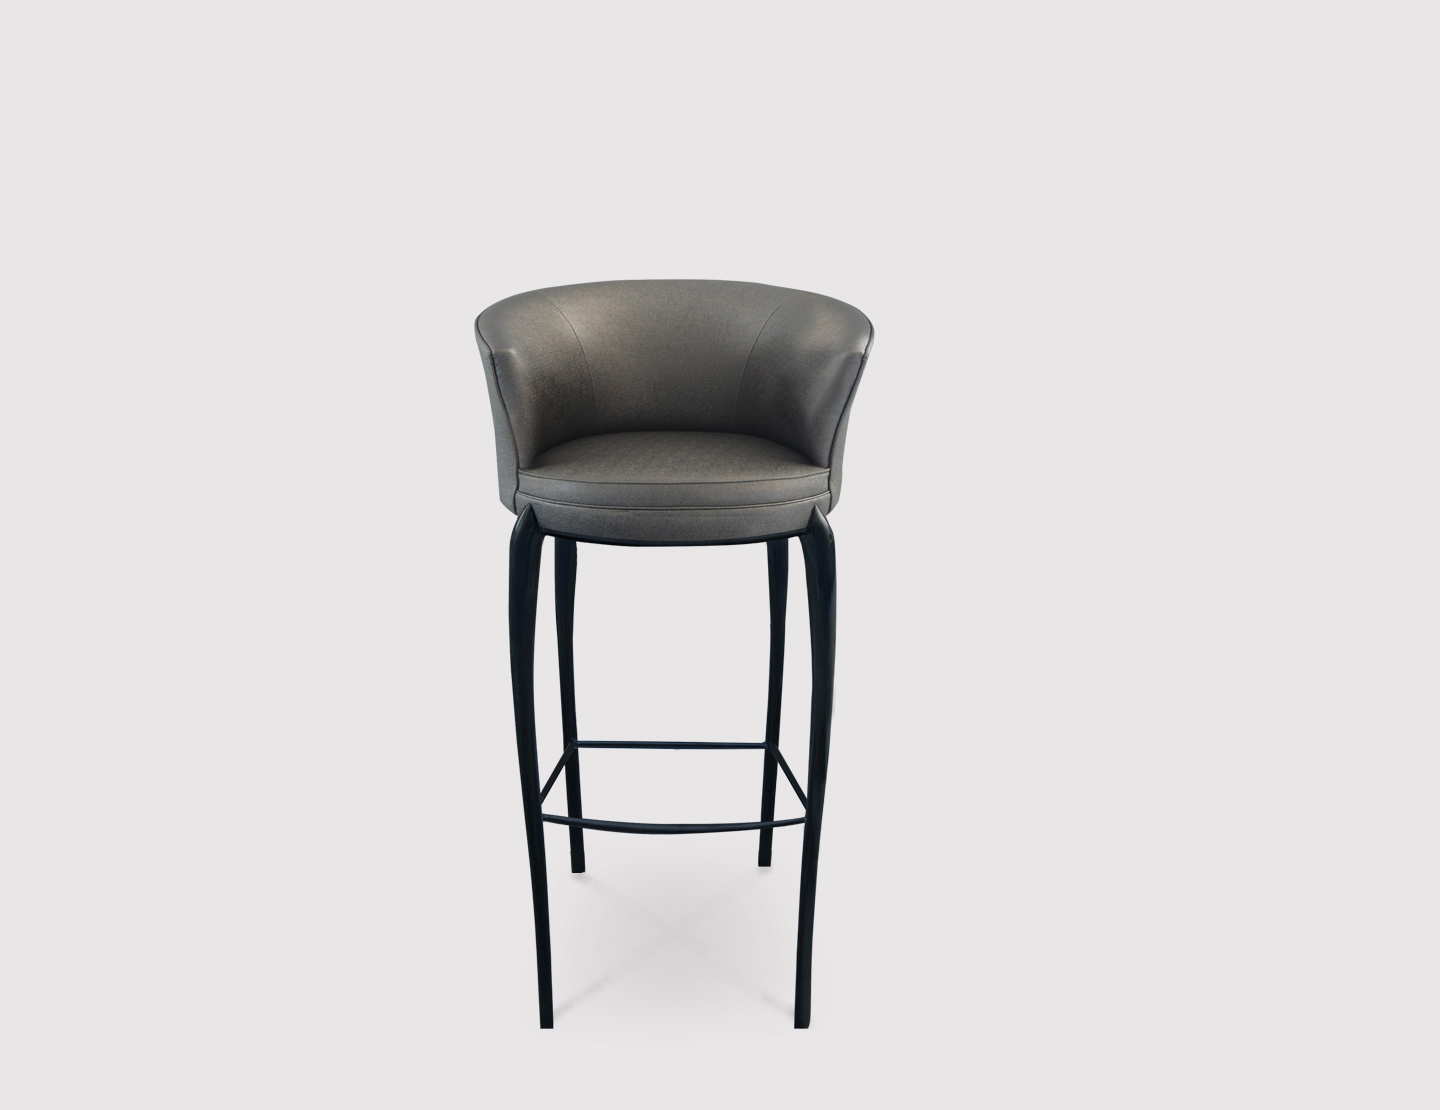 Delice Bar Stool by KOKET